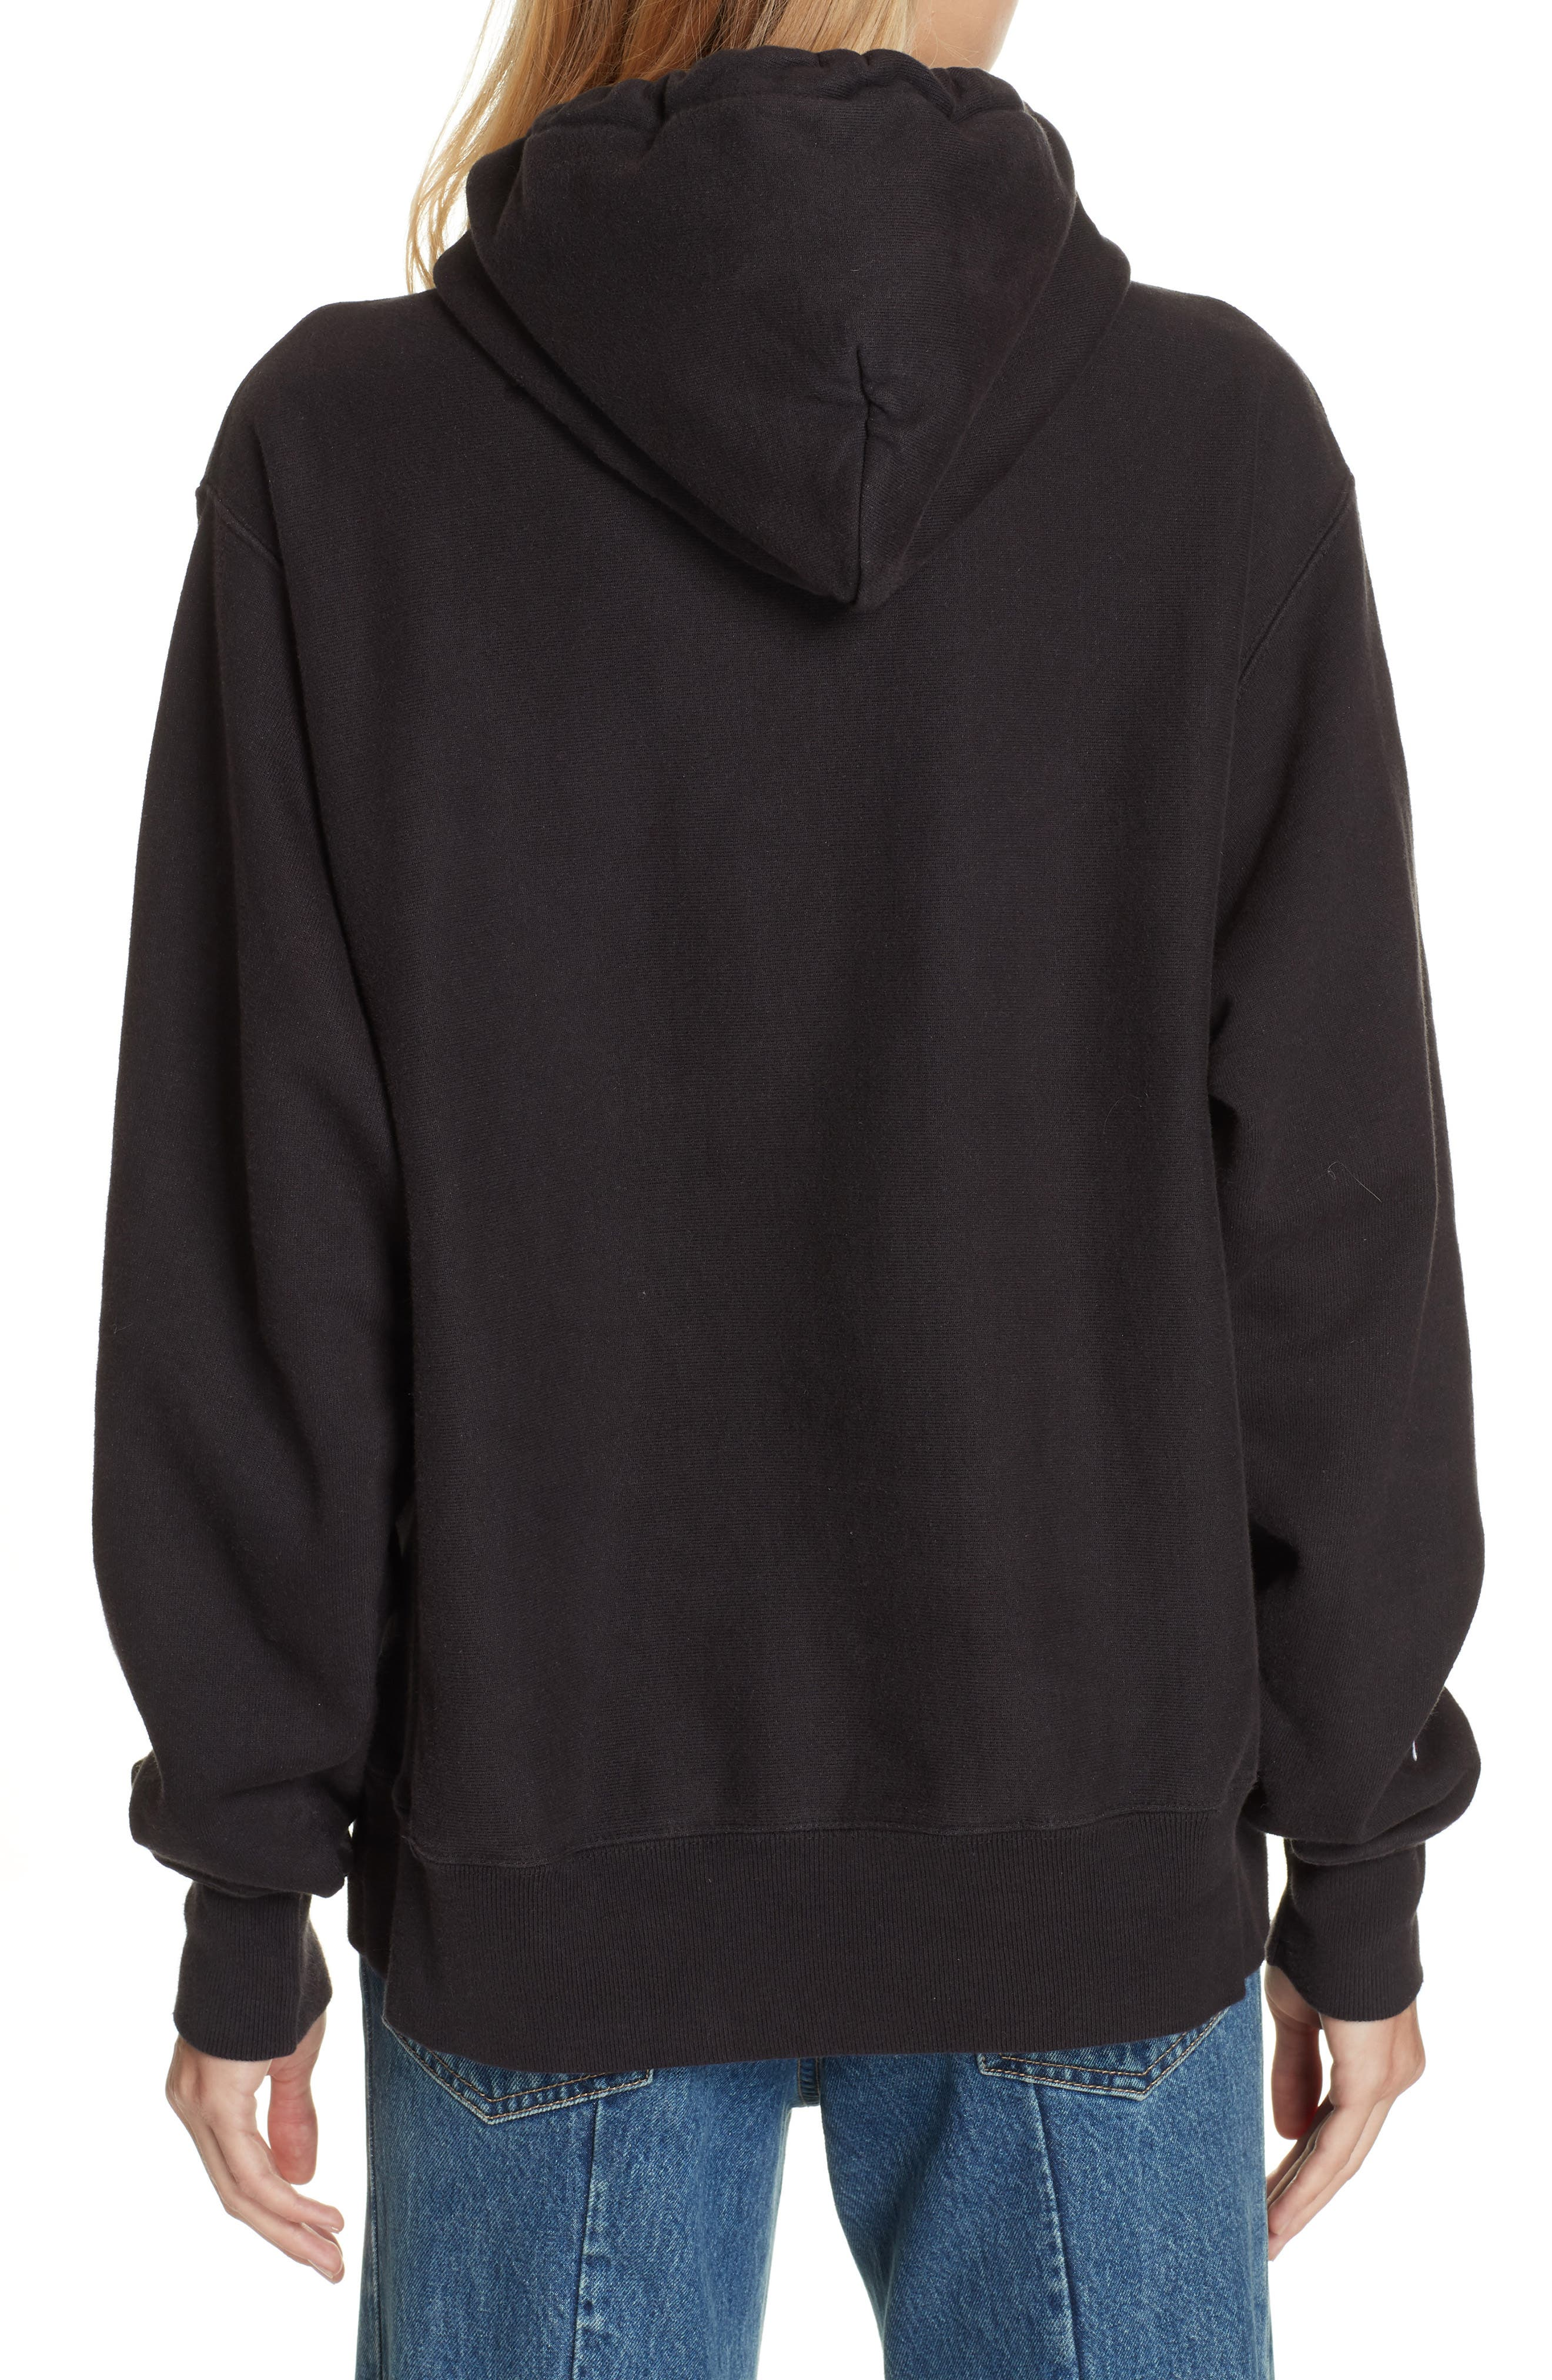 x MCM Pullover Hoodie,                             Alternate thumbnail 3, color,                             001